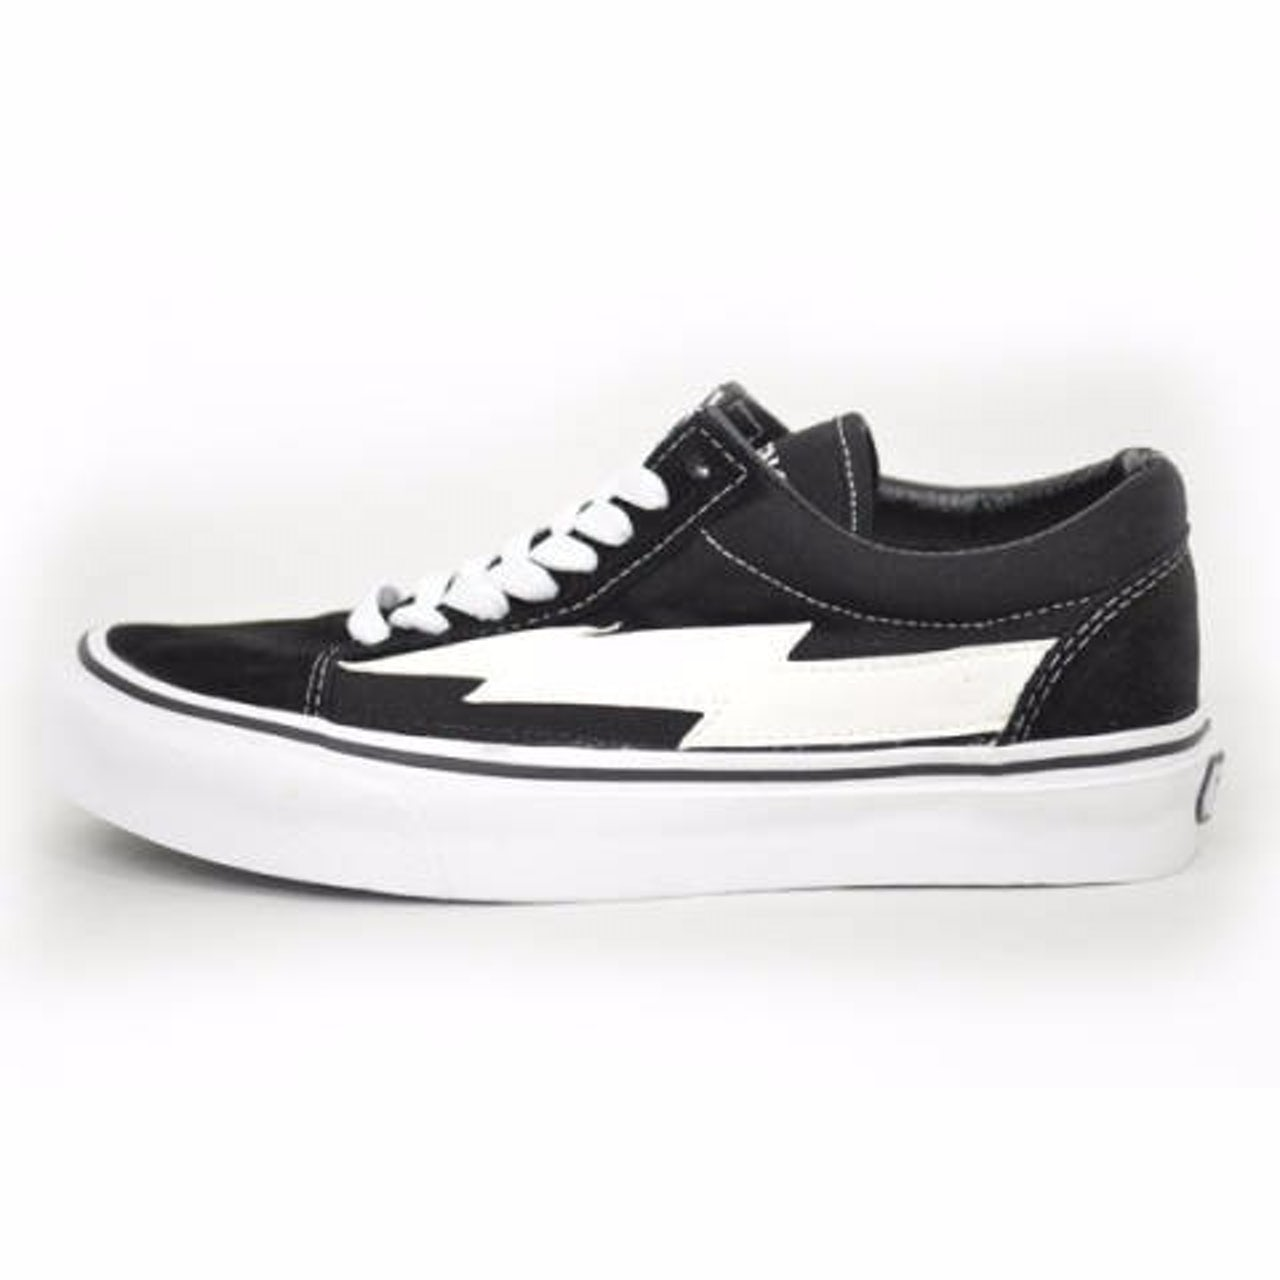 c42c98d1129fc4 Product photo of the Revenge X Storm sneaker